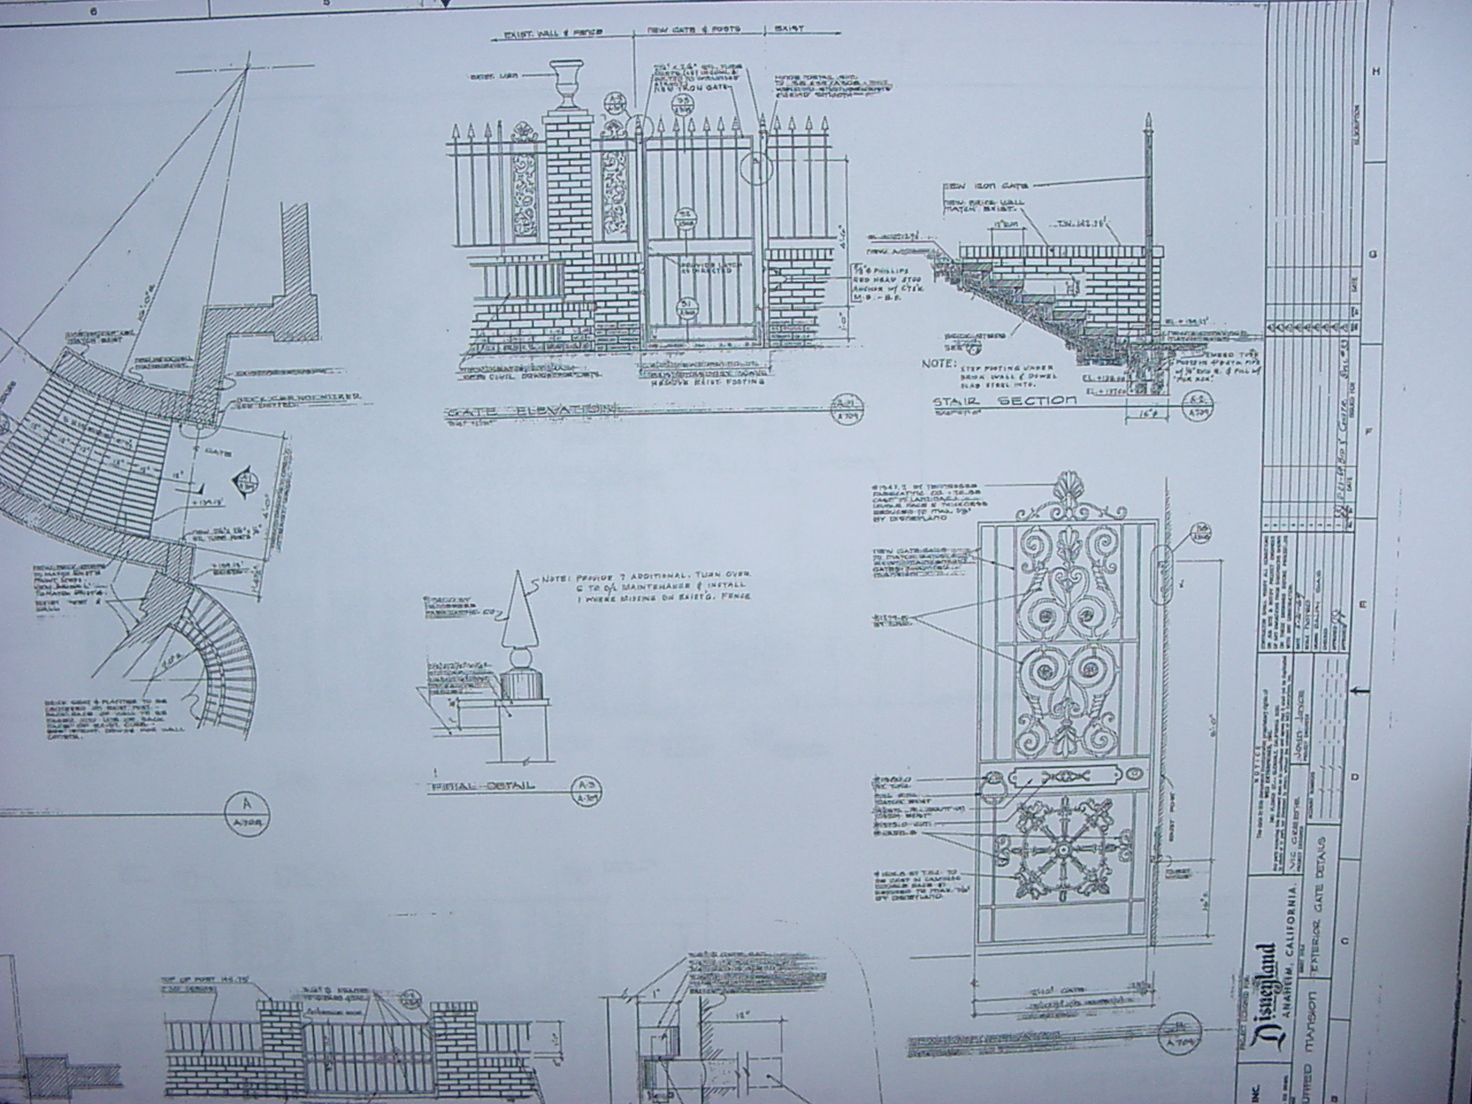 Disney haunted mansion blue prints main street tokyo disney haunted mansion blue prints main street tokyo disneyland blueprints new orleans malvernweather Image collections